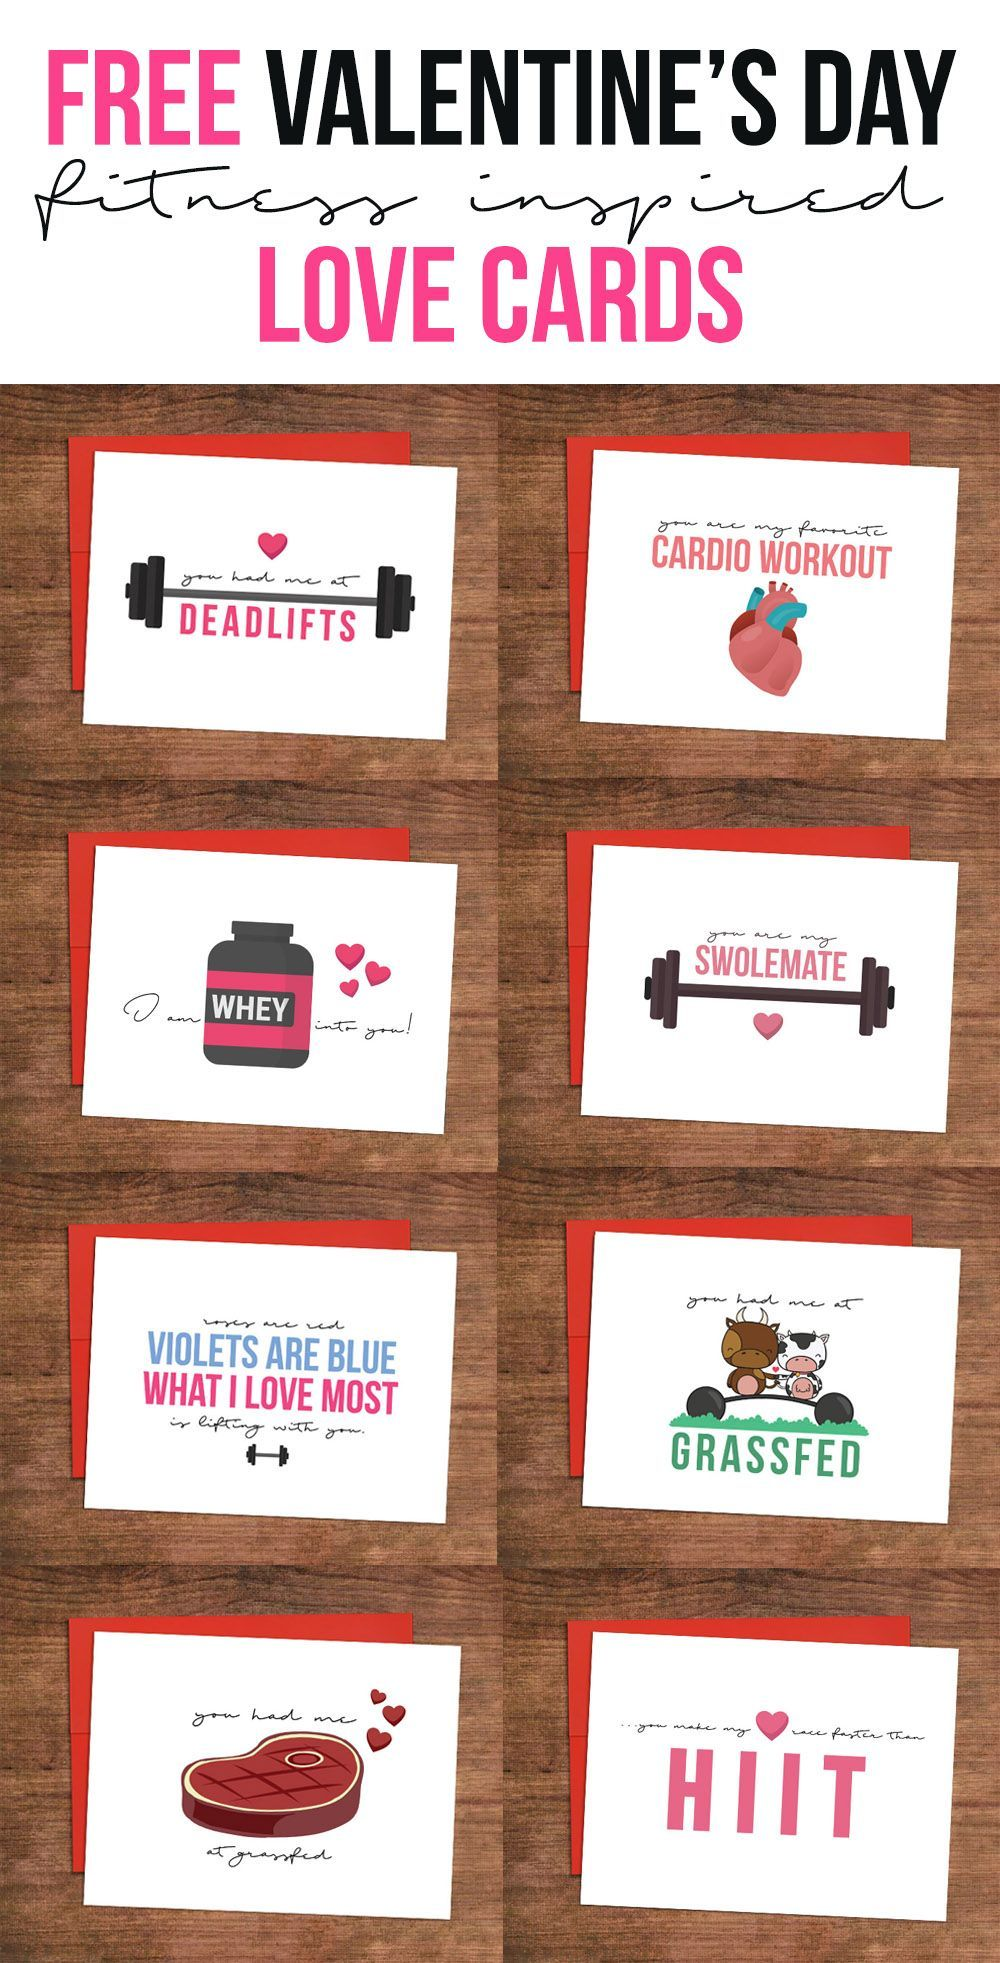 #Cards #day #Fitness #Funny #happy valentines day #Valentines #valentines day #valentines day cards...